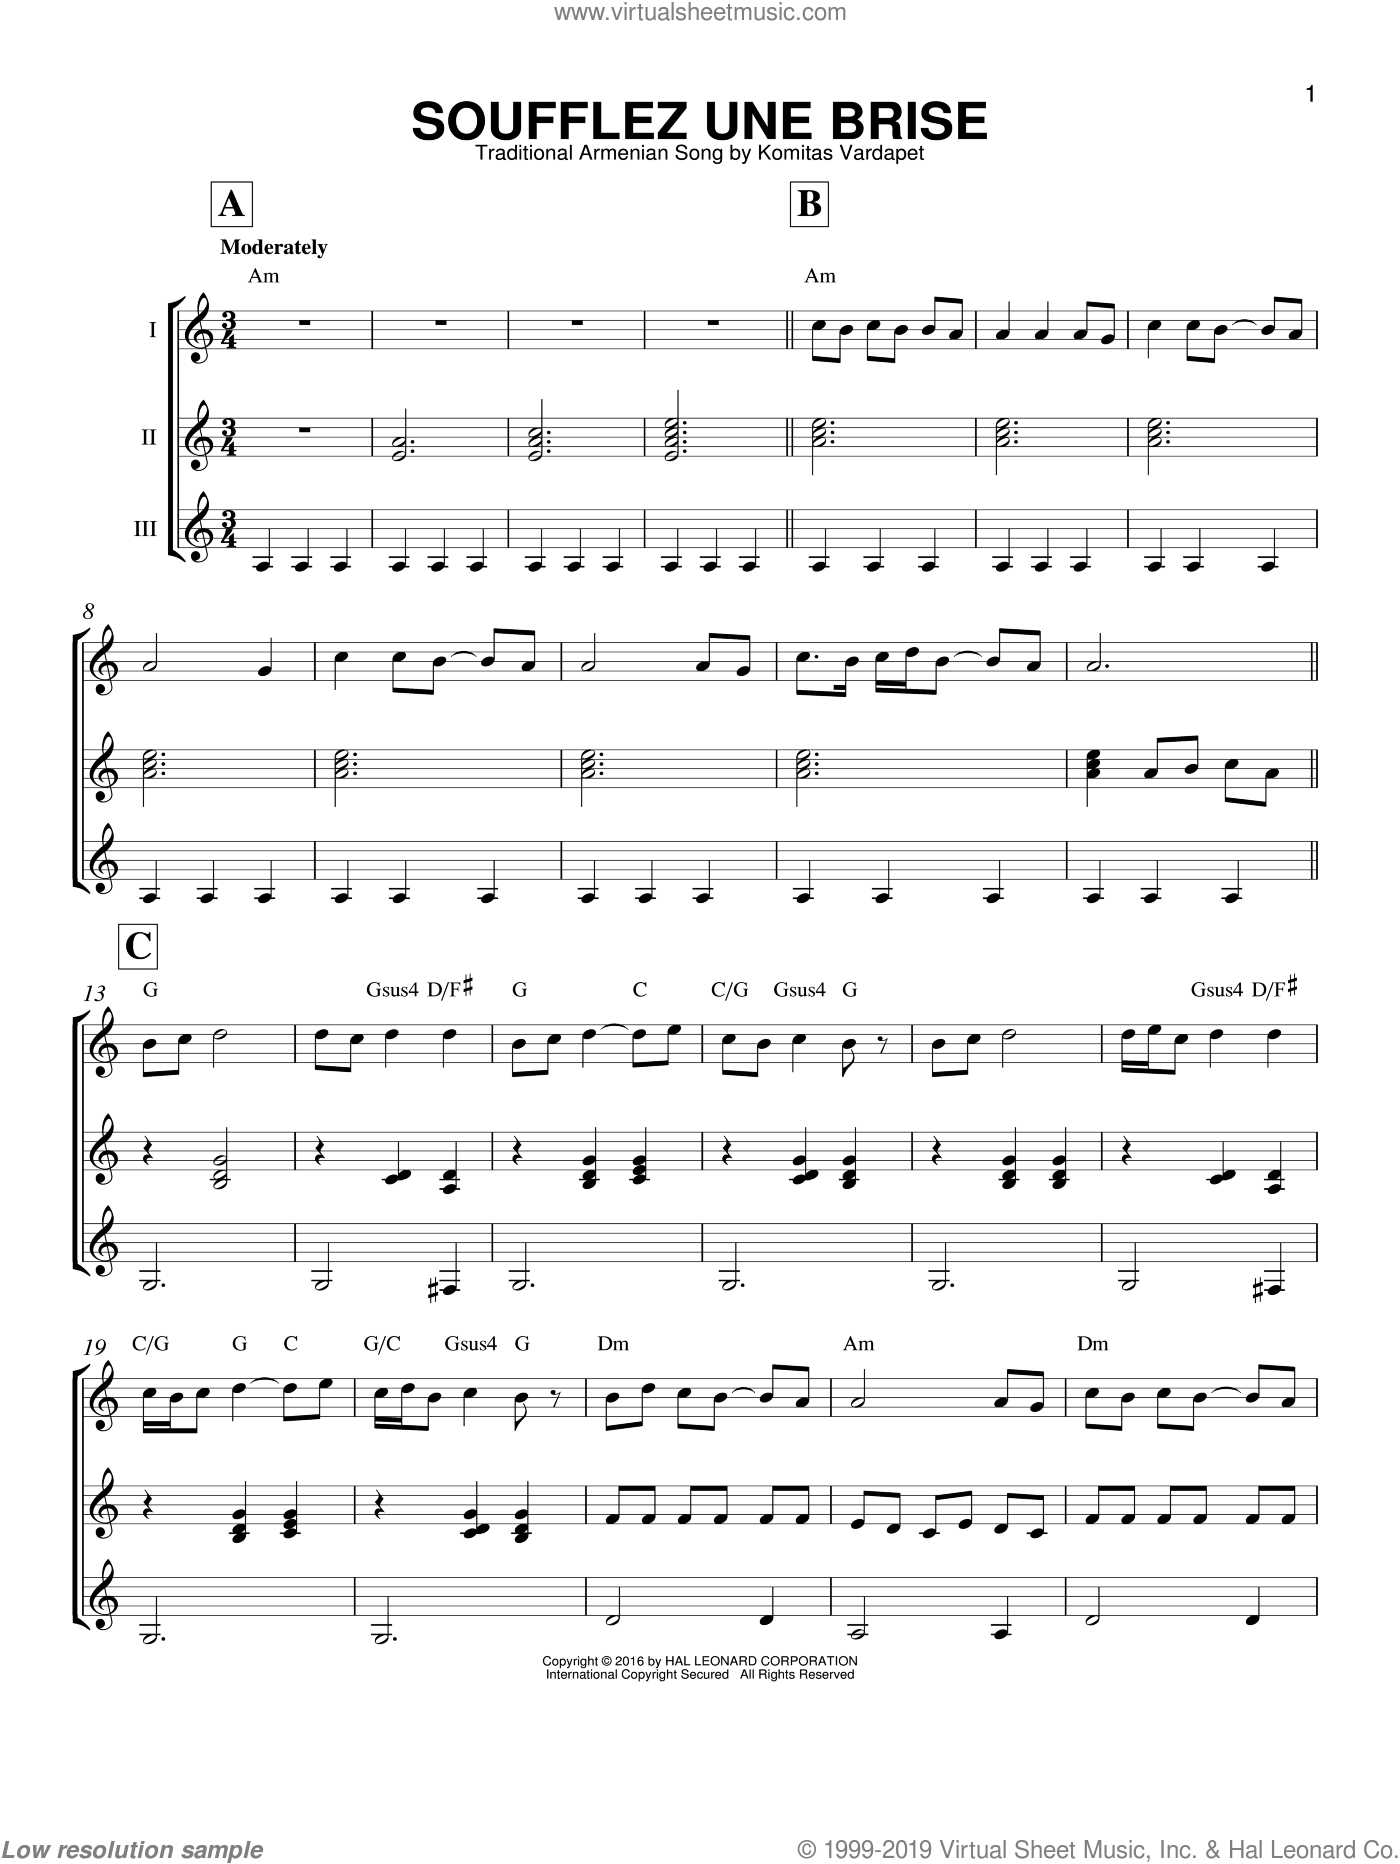 Soufflez Une Brise sheet music for guitar ensemble by Traditional Armenian Song and Komitas Verdapet, intermediate skill level